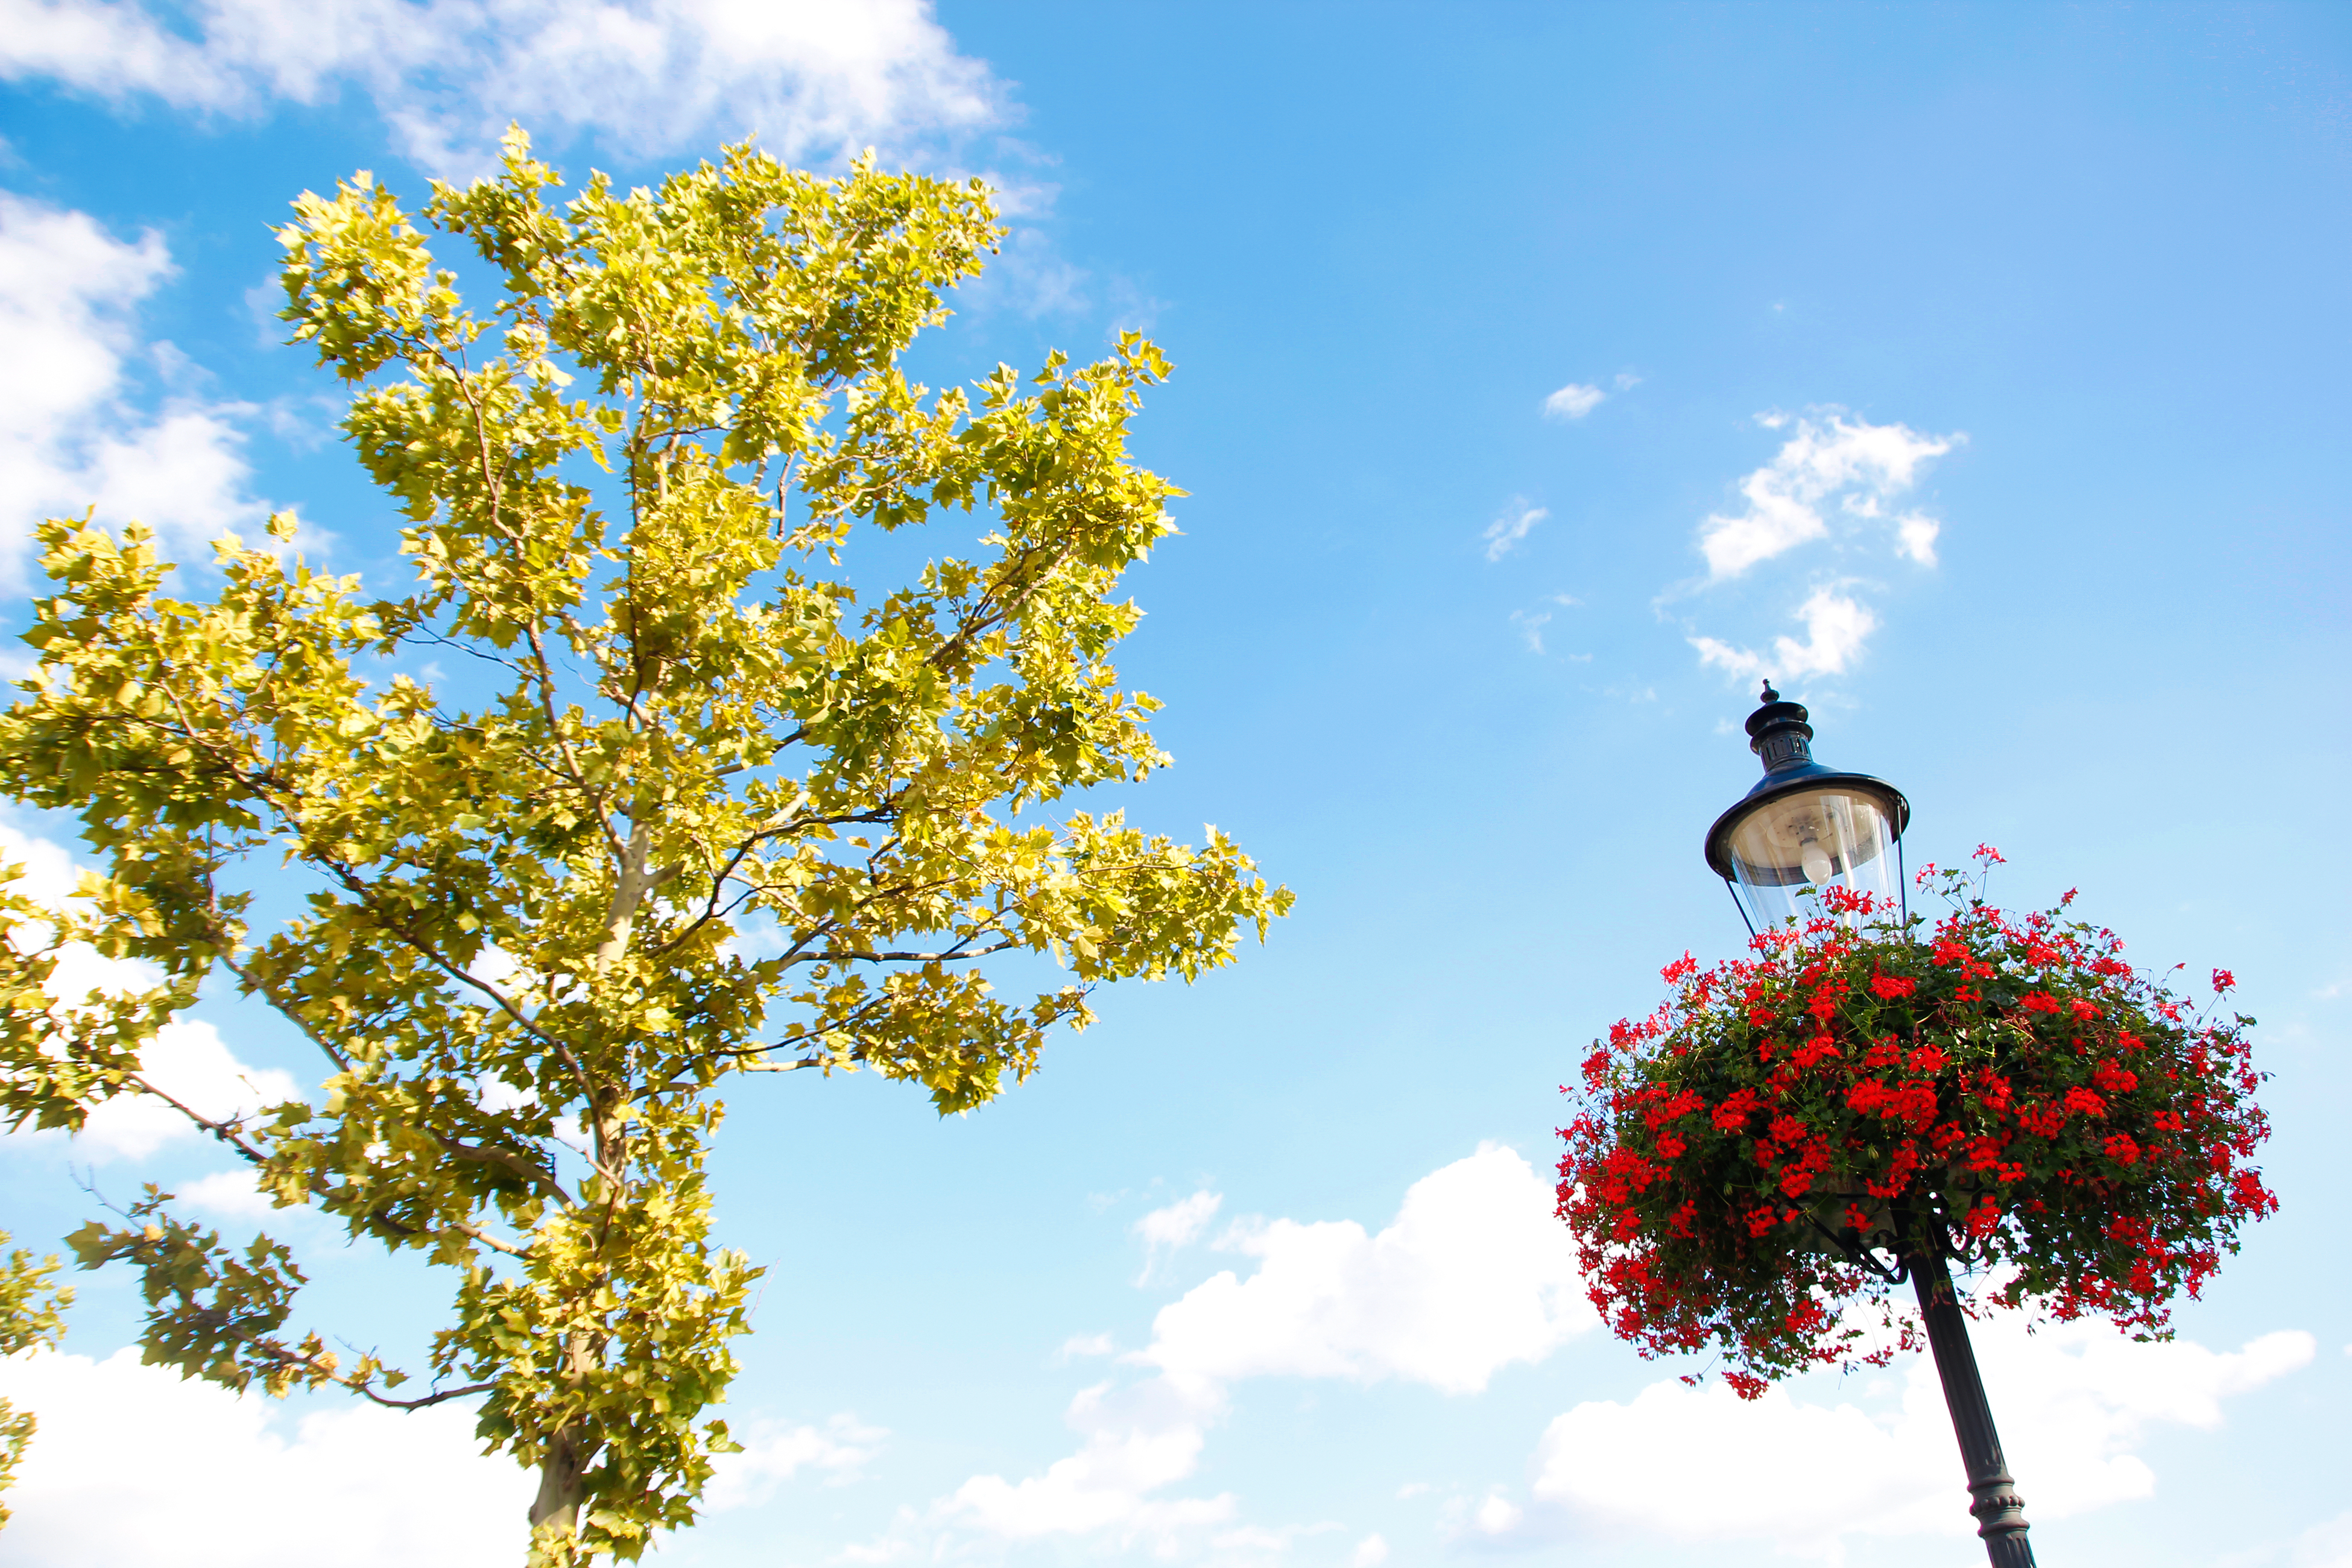 flowers and leaves, Bloom, Nature, Tree, Summer, HQ Photo